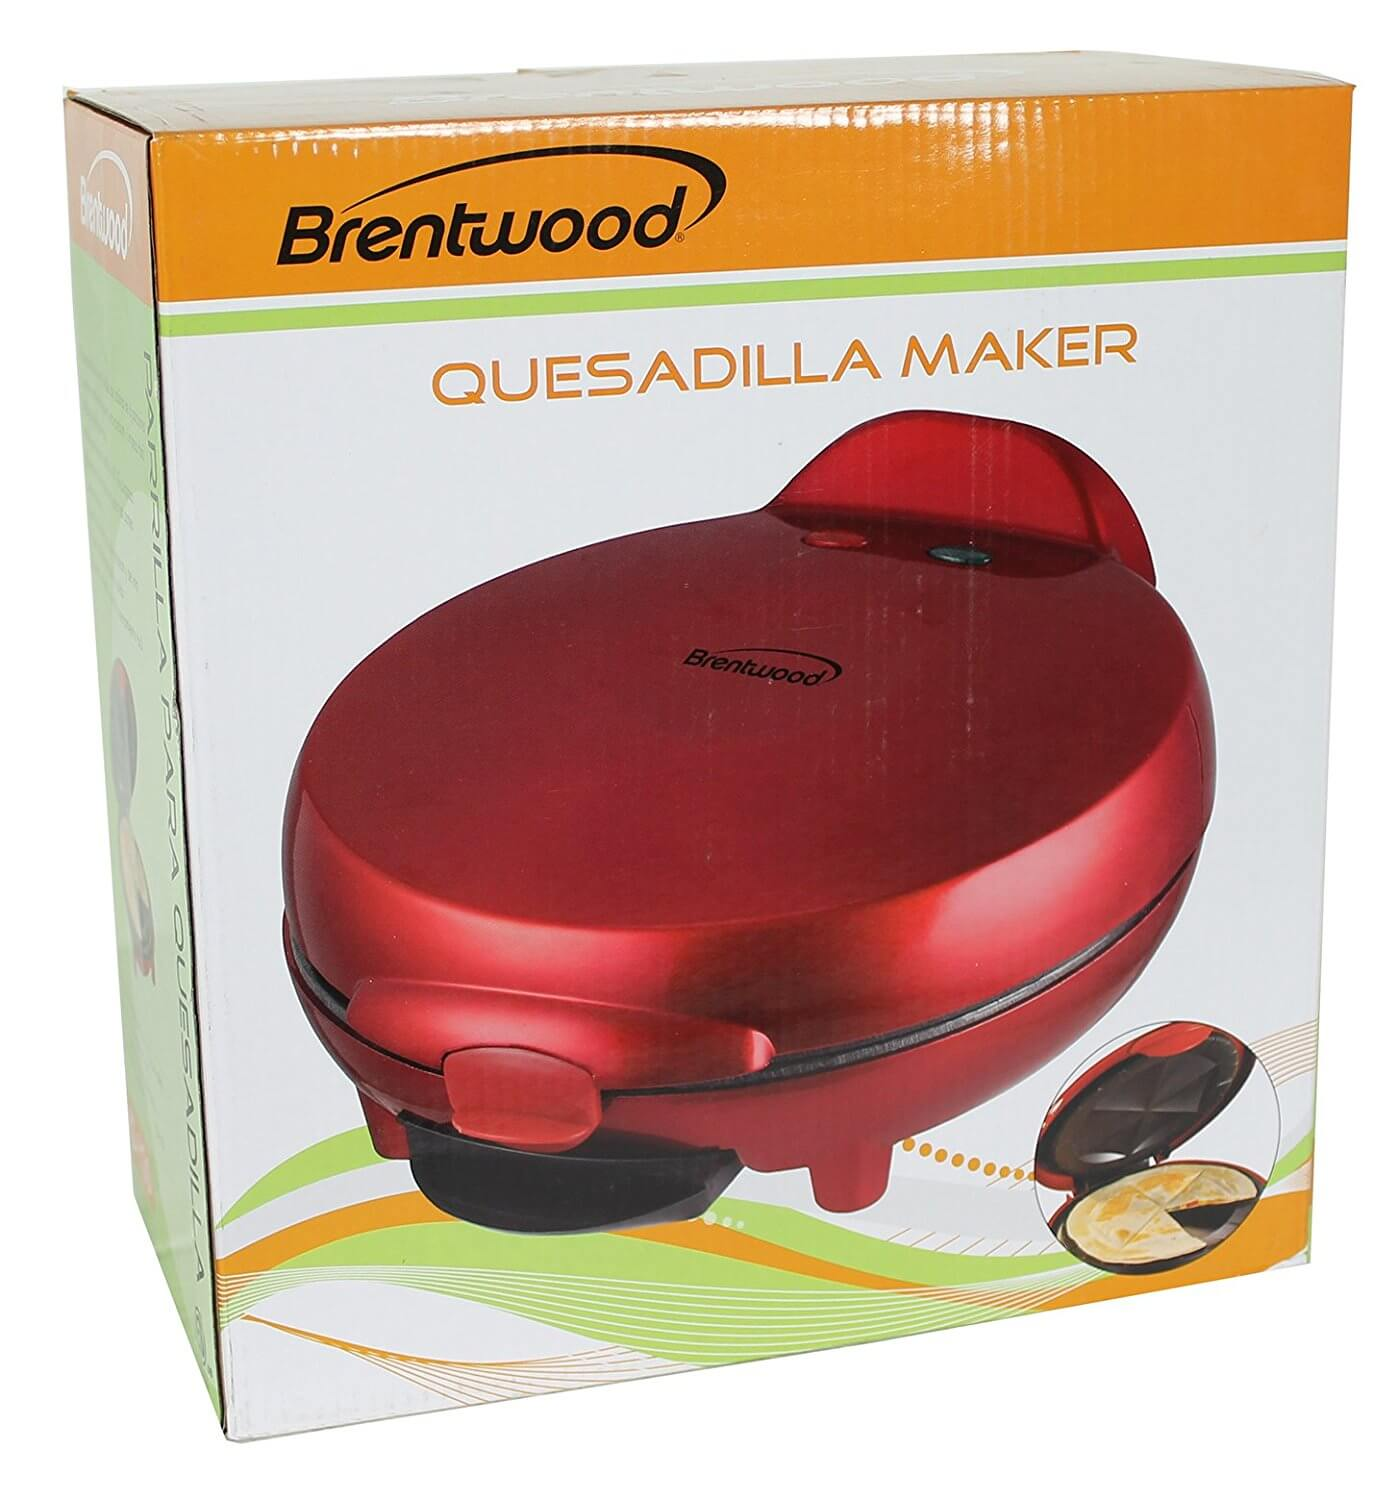 Brentwood TS-120 Appliances Quesadilla Maker